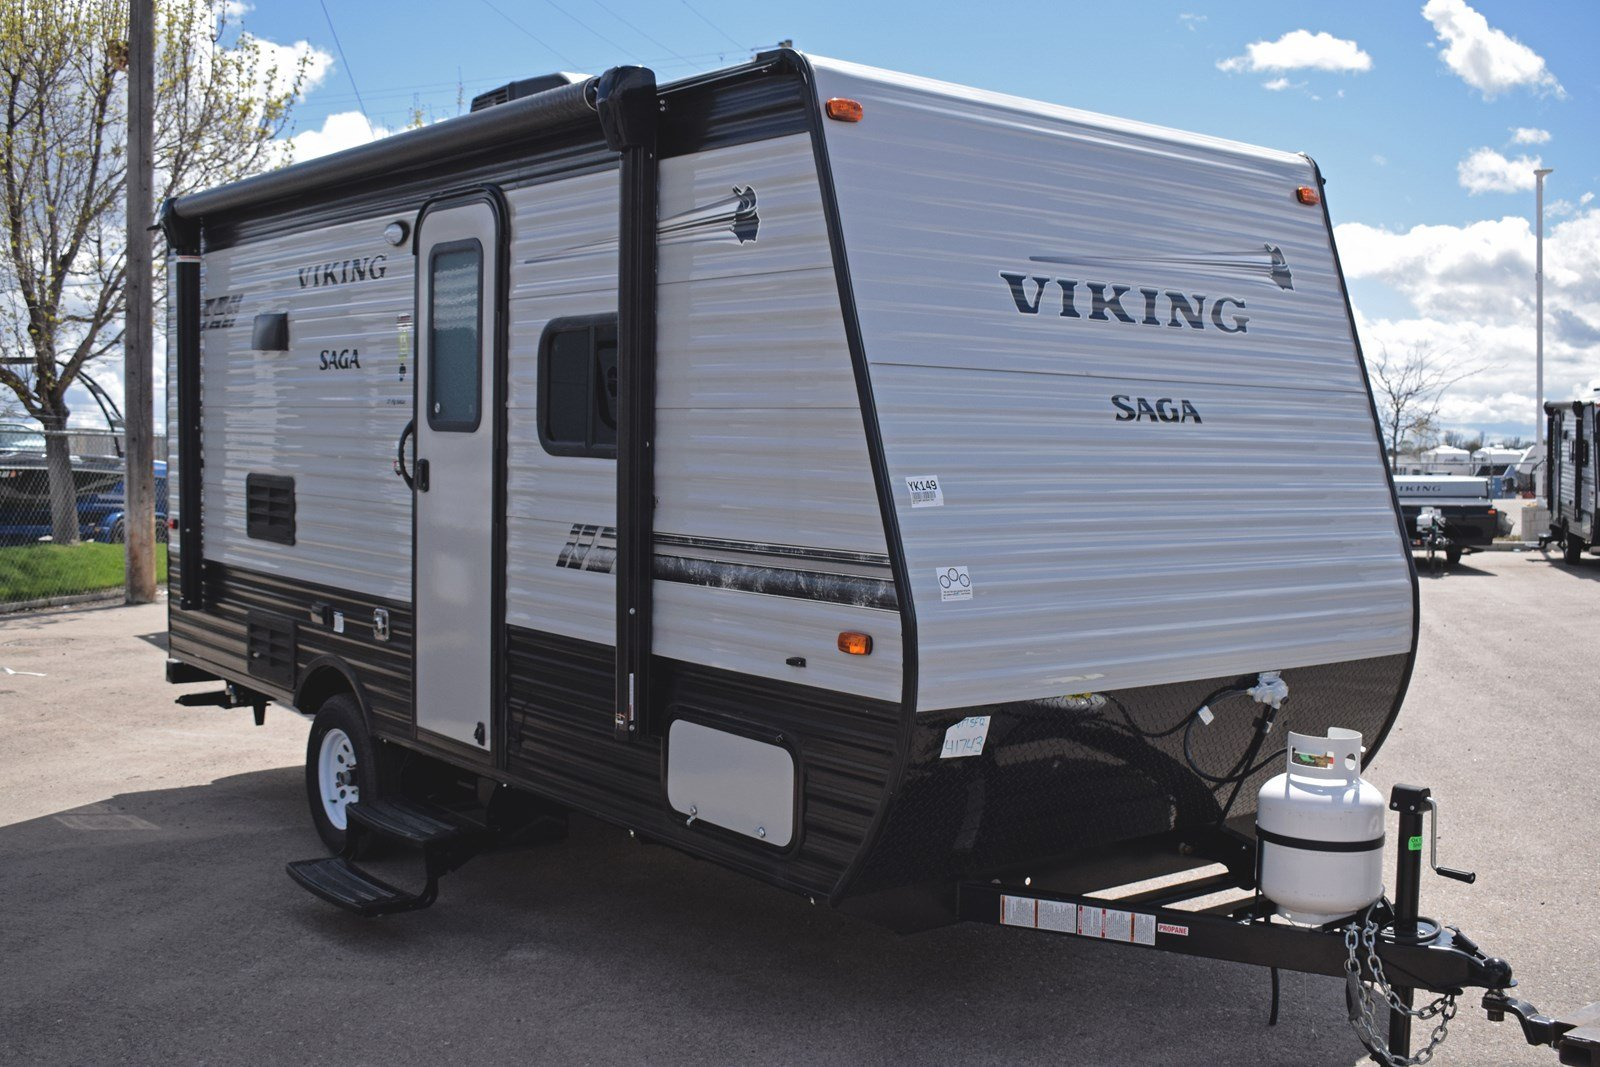 New 2019 COACHMEN VIKING SAGA 17SBH